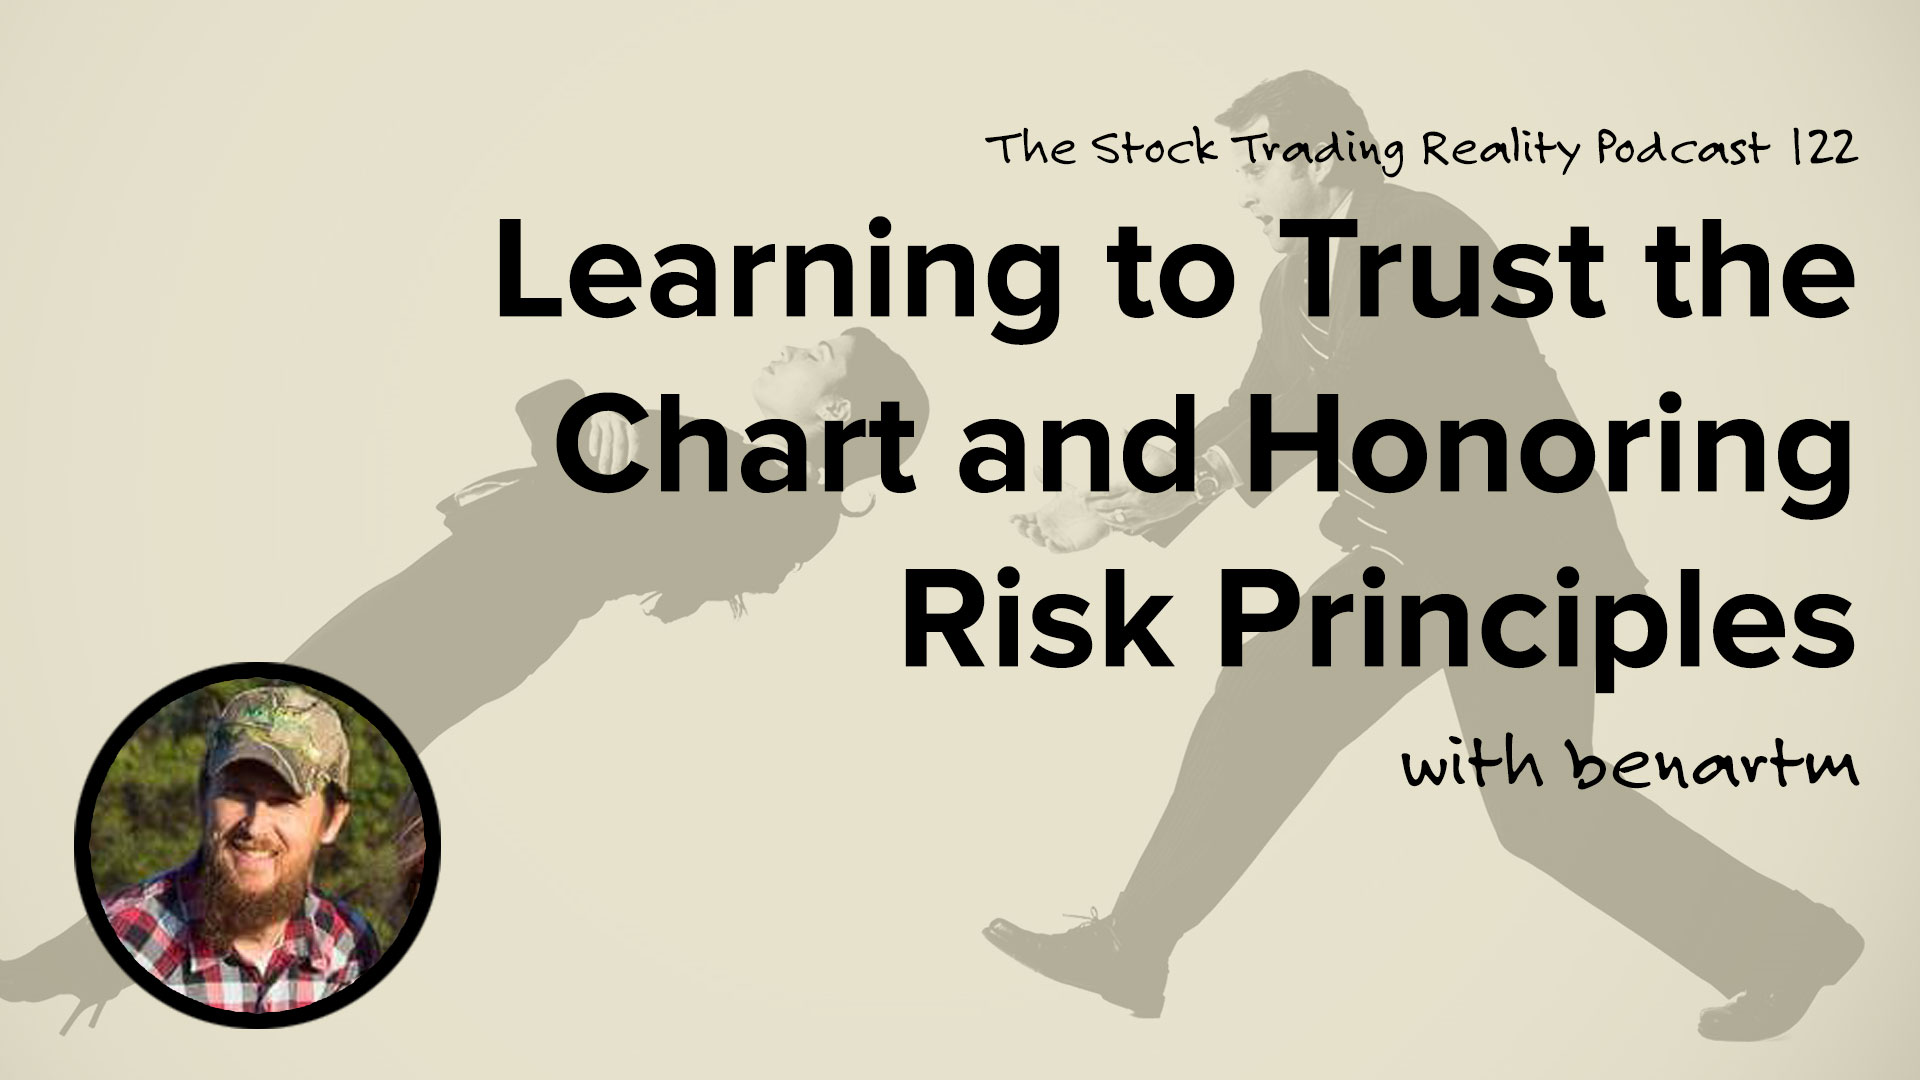 STR 122: Learning to Trust the Chart and Honoring Risk Principles